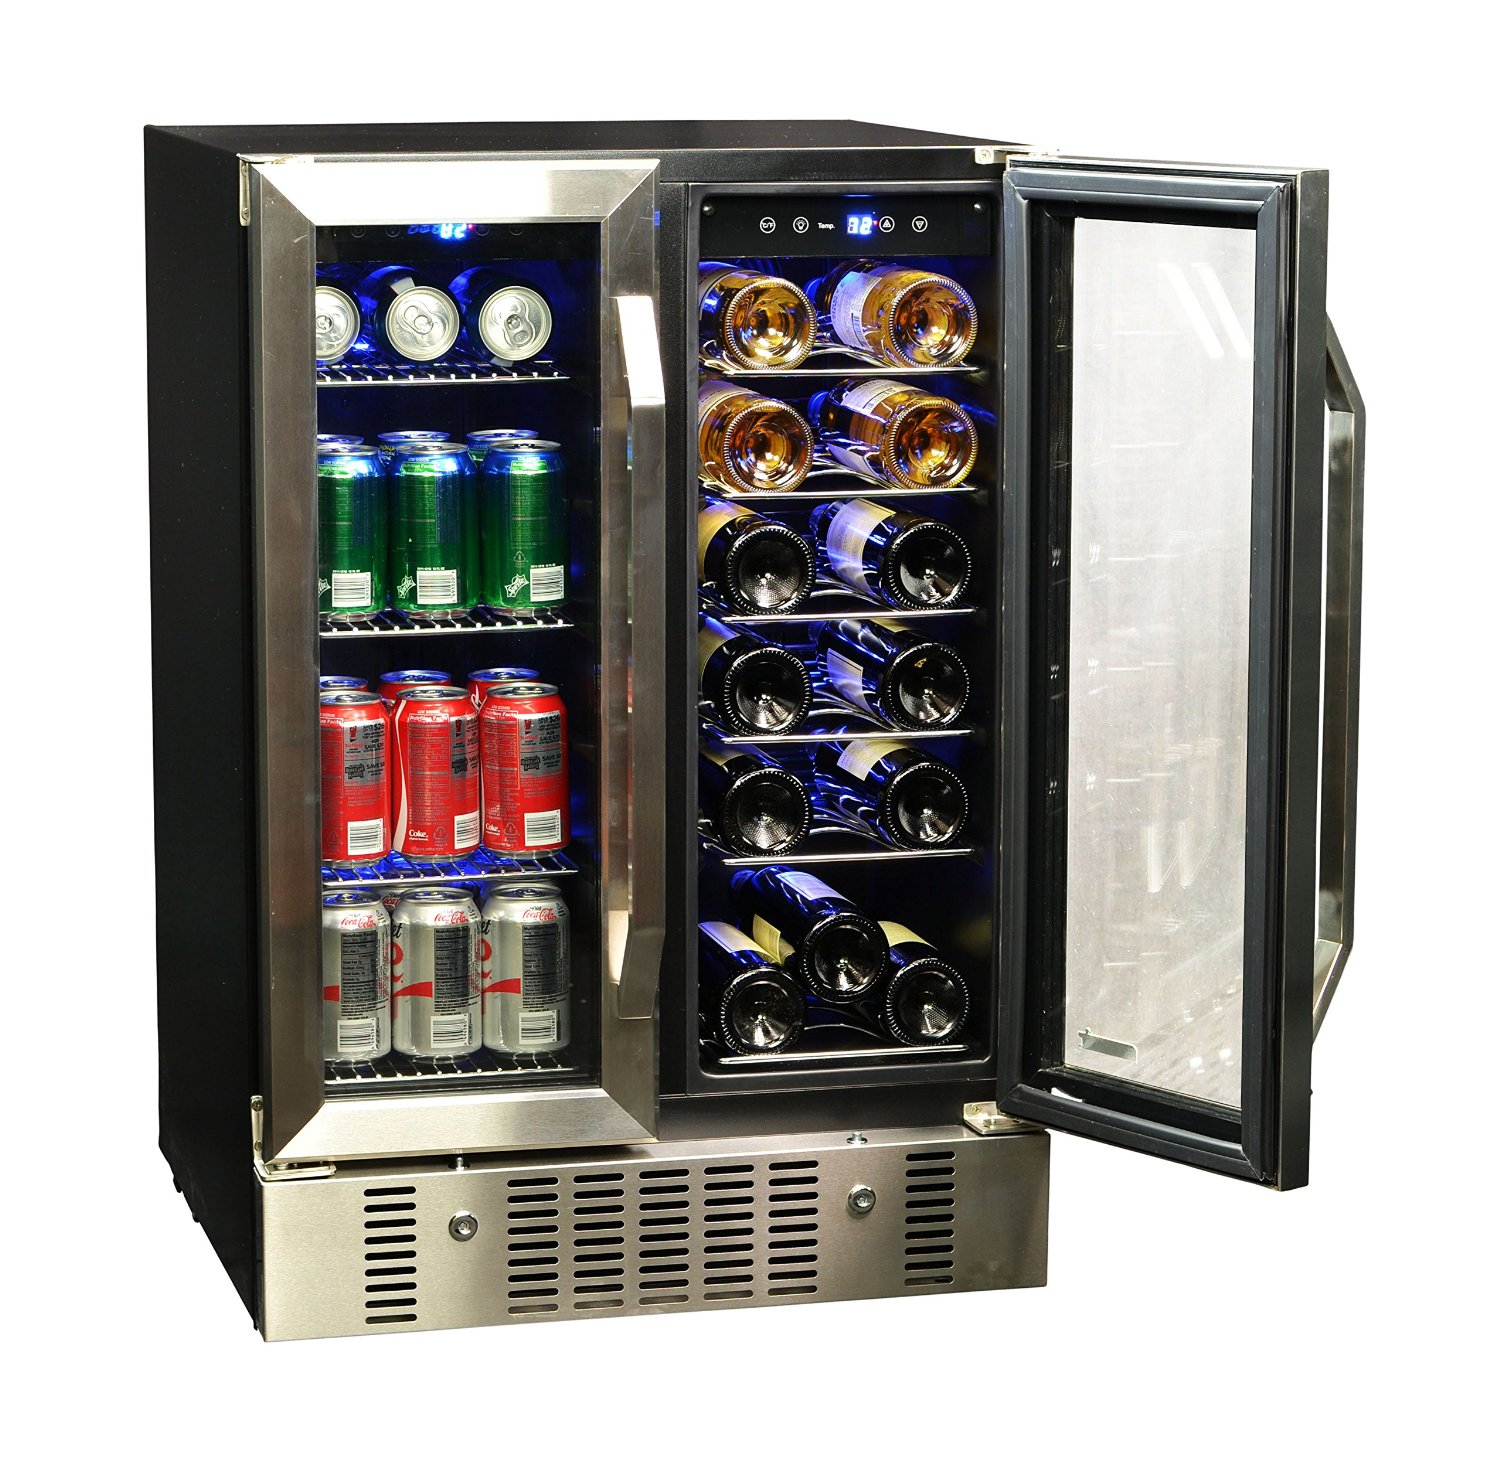 Wine Refrigerator Reviews >> Wine and Beer Fridge - Top 5 - Best Beer Refrigerator